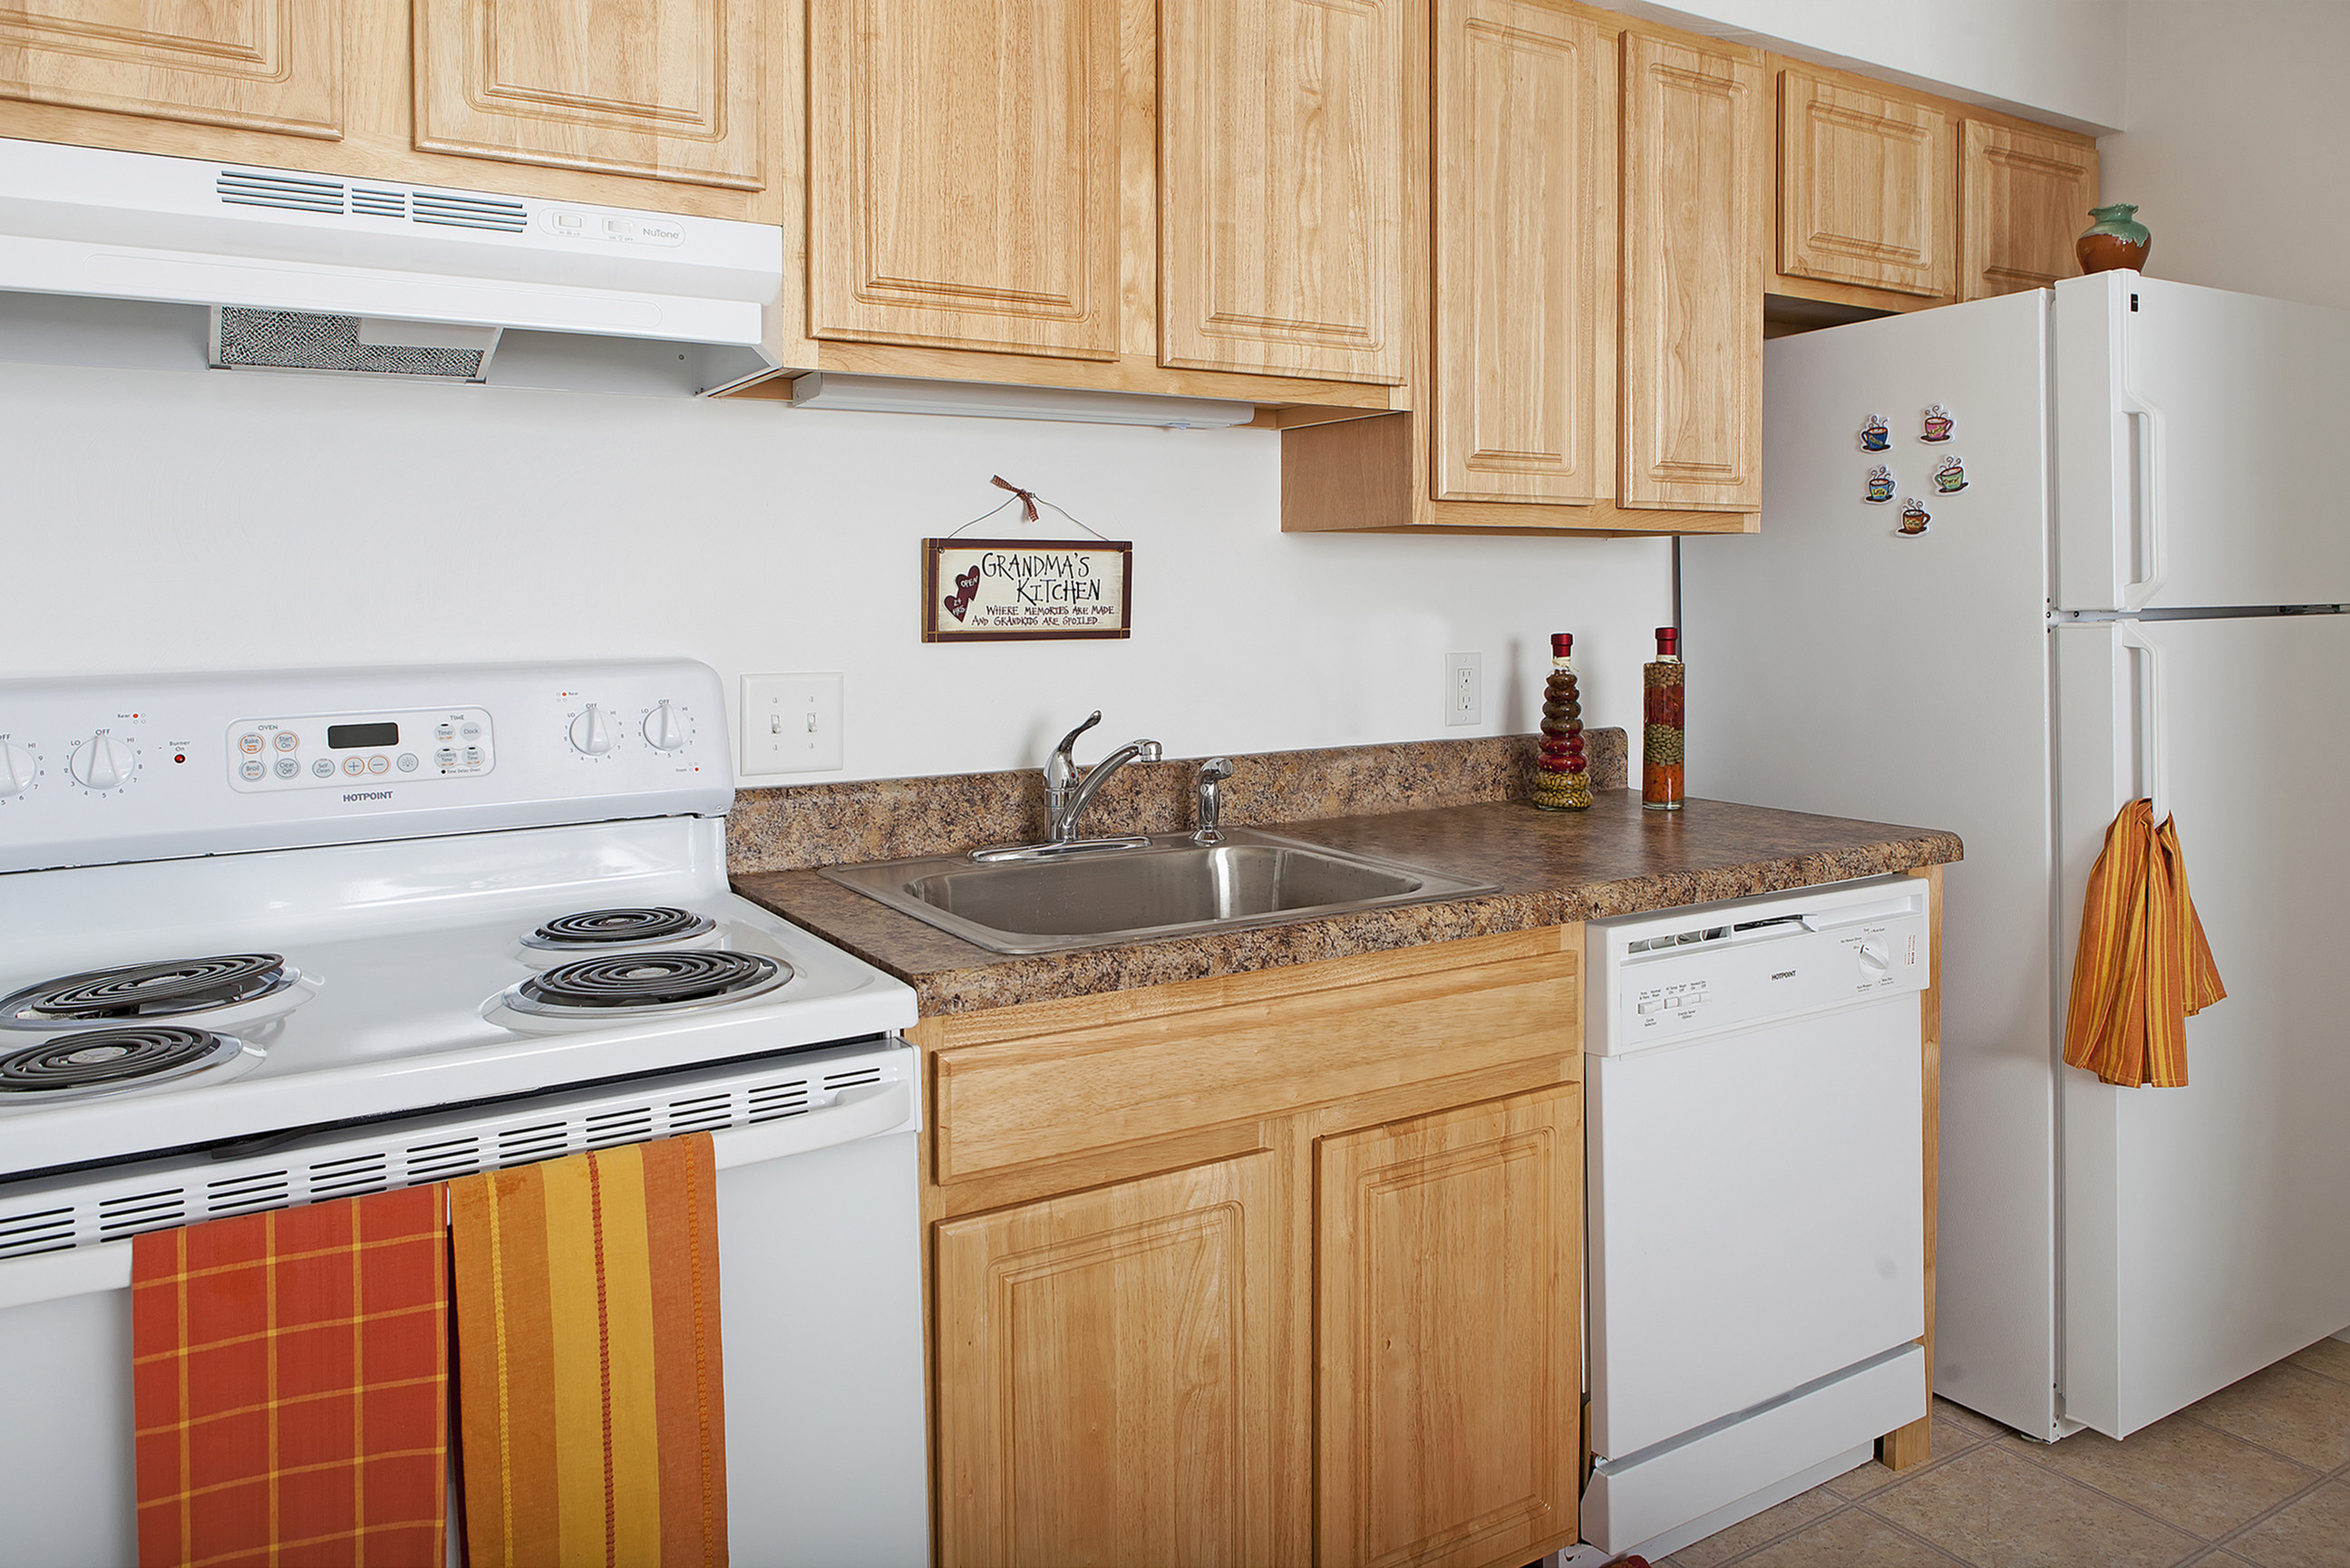 dishwasher in fully-equipped and energy-efficient kitchen